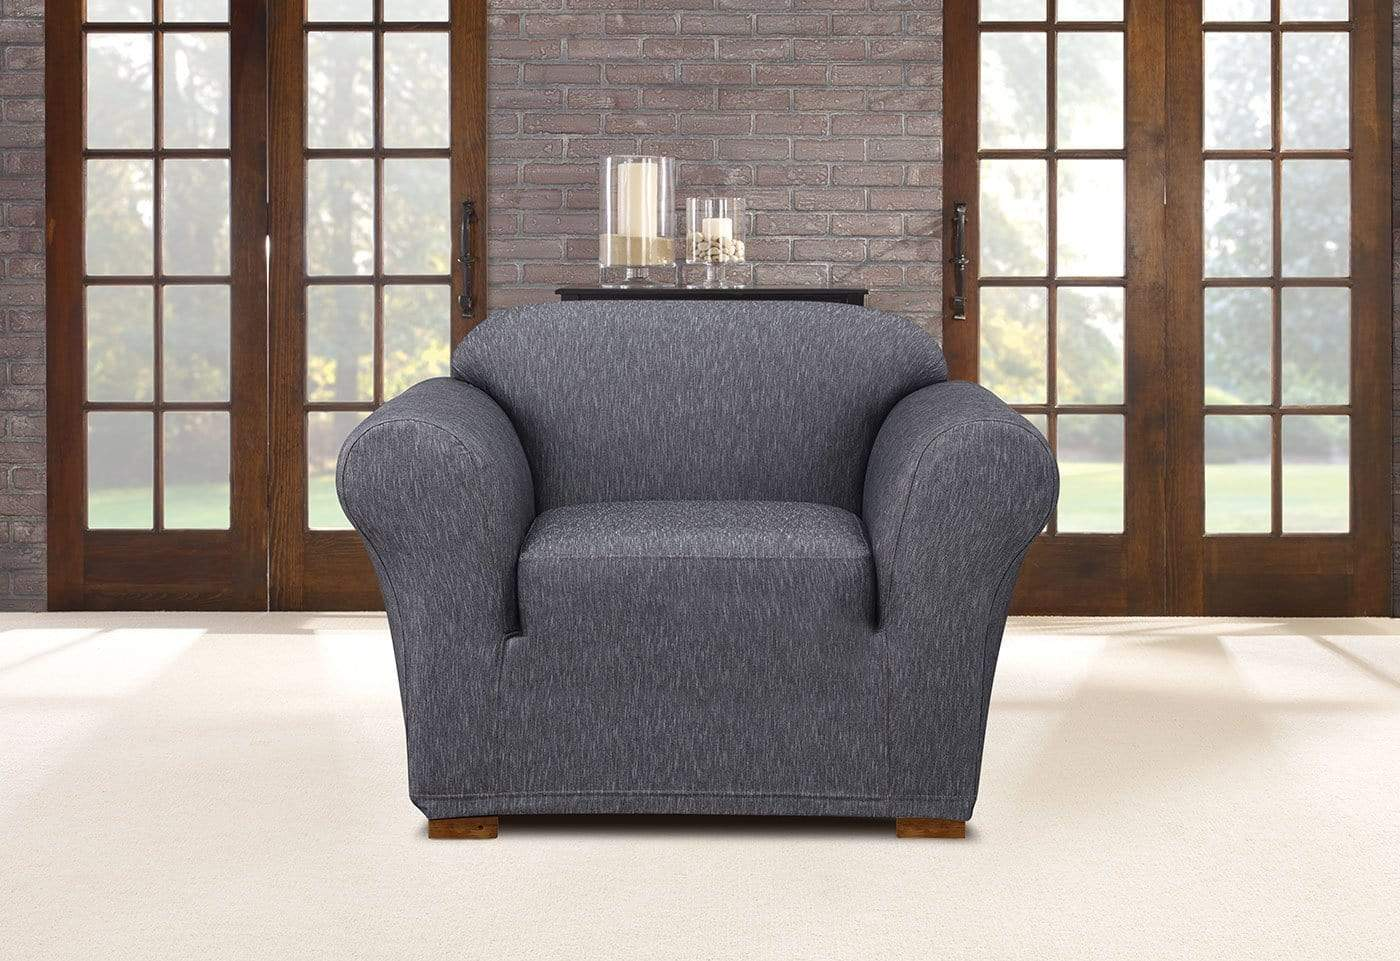 pocket brown slipcovers stretch slipcover astonishing recliners design simple target with for extraordinary recliner colour sure idea covers